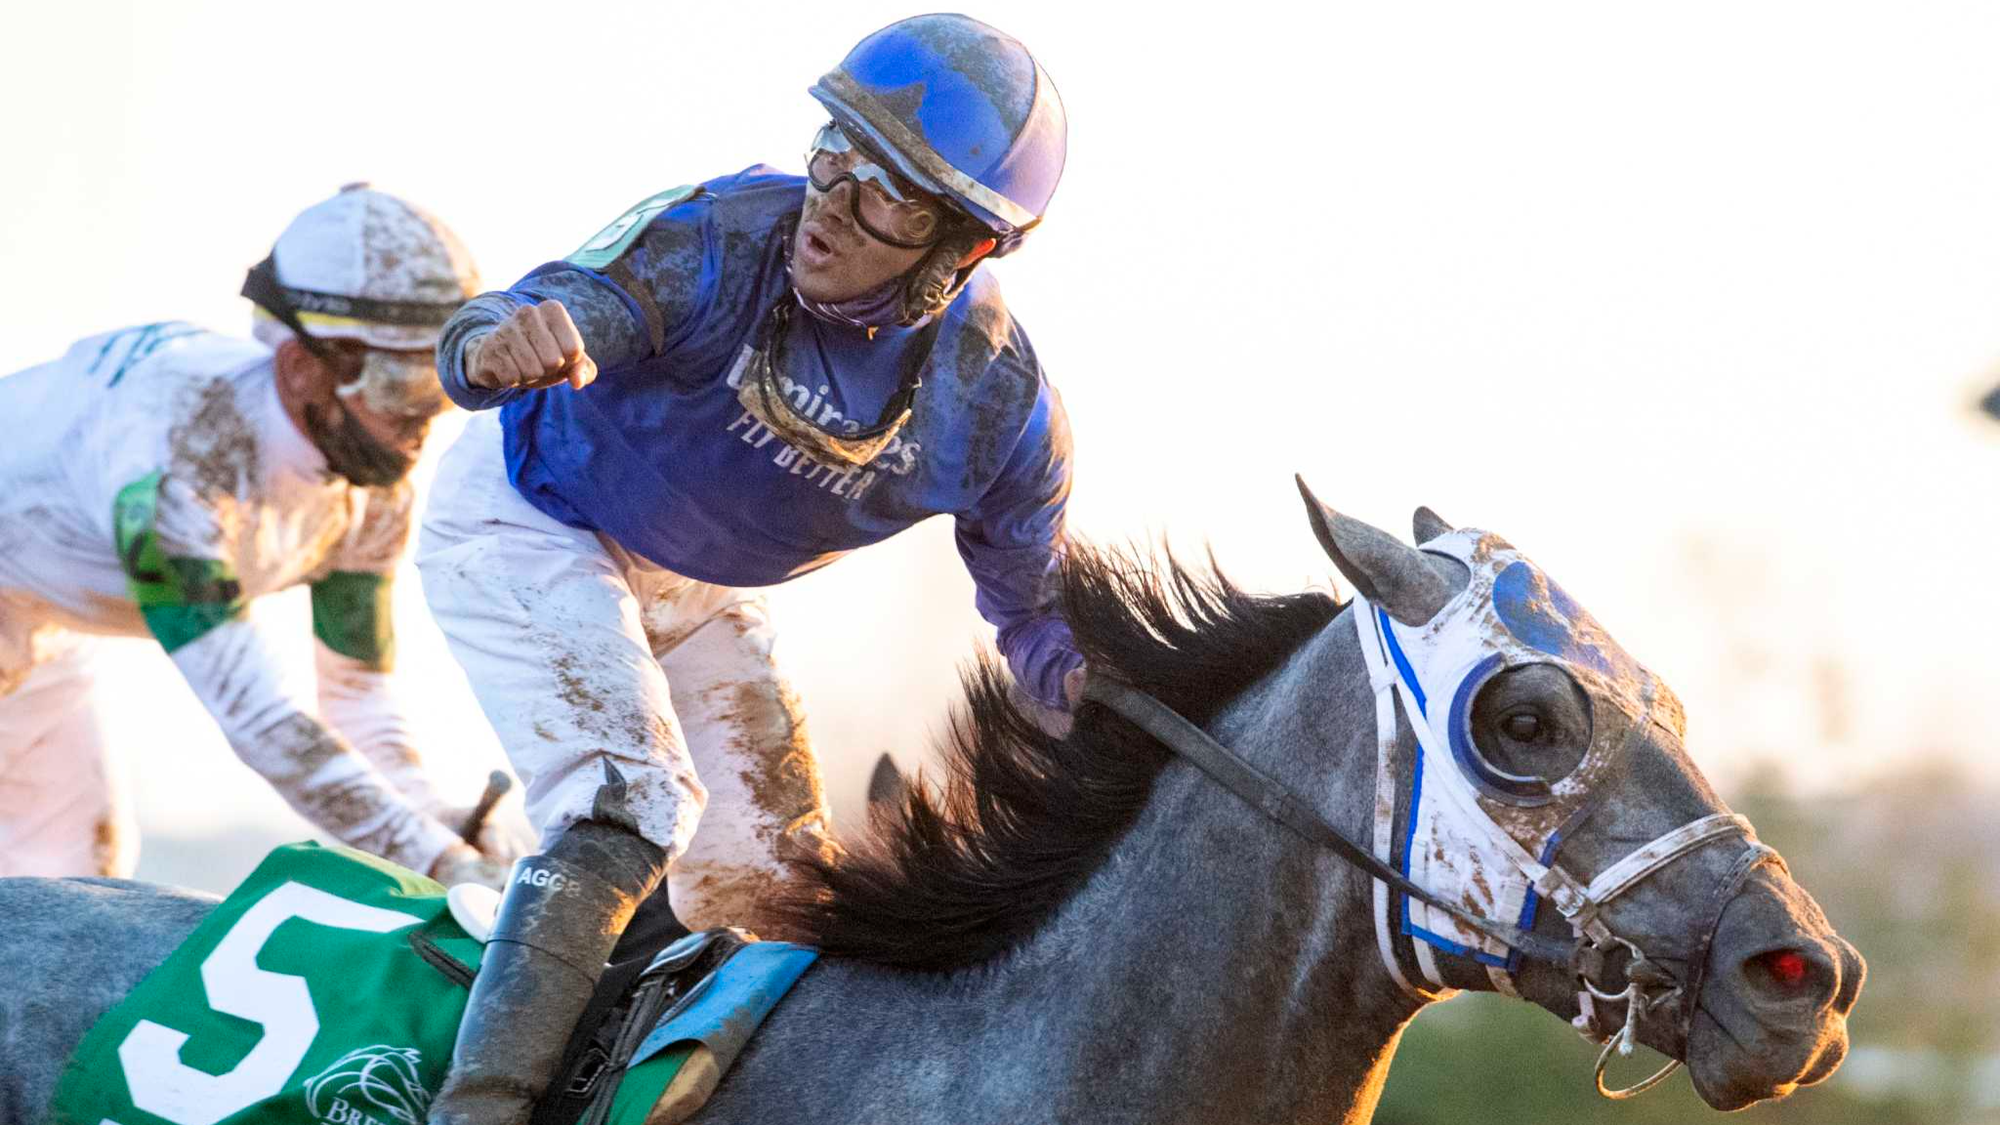 Kentucky Derby 2021: A Look at the Likely Contenders